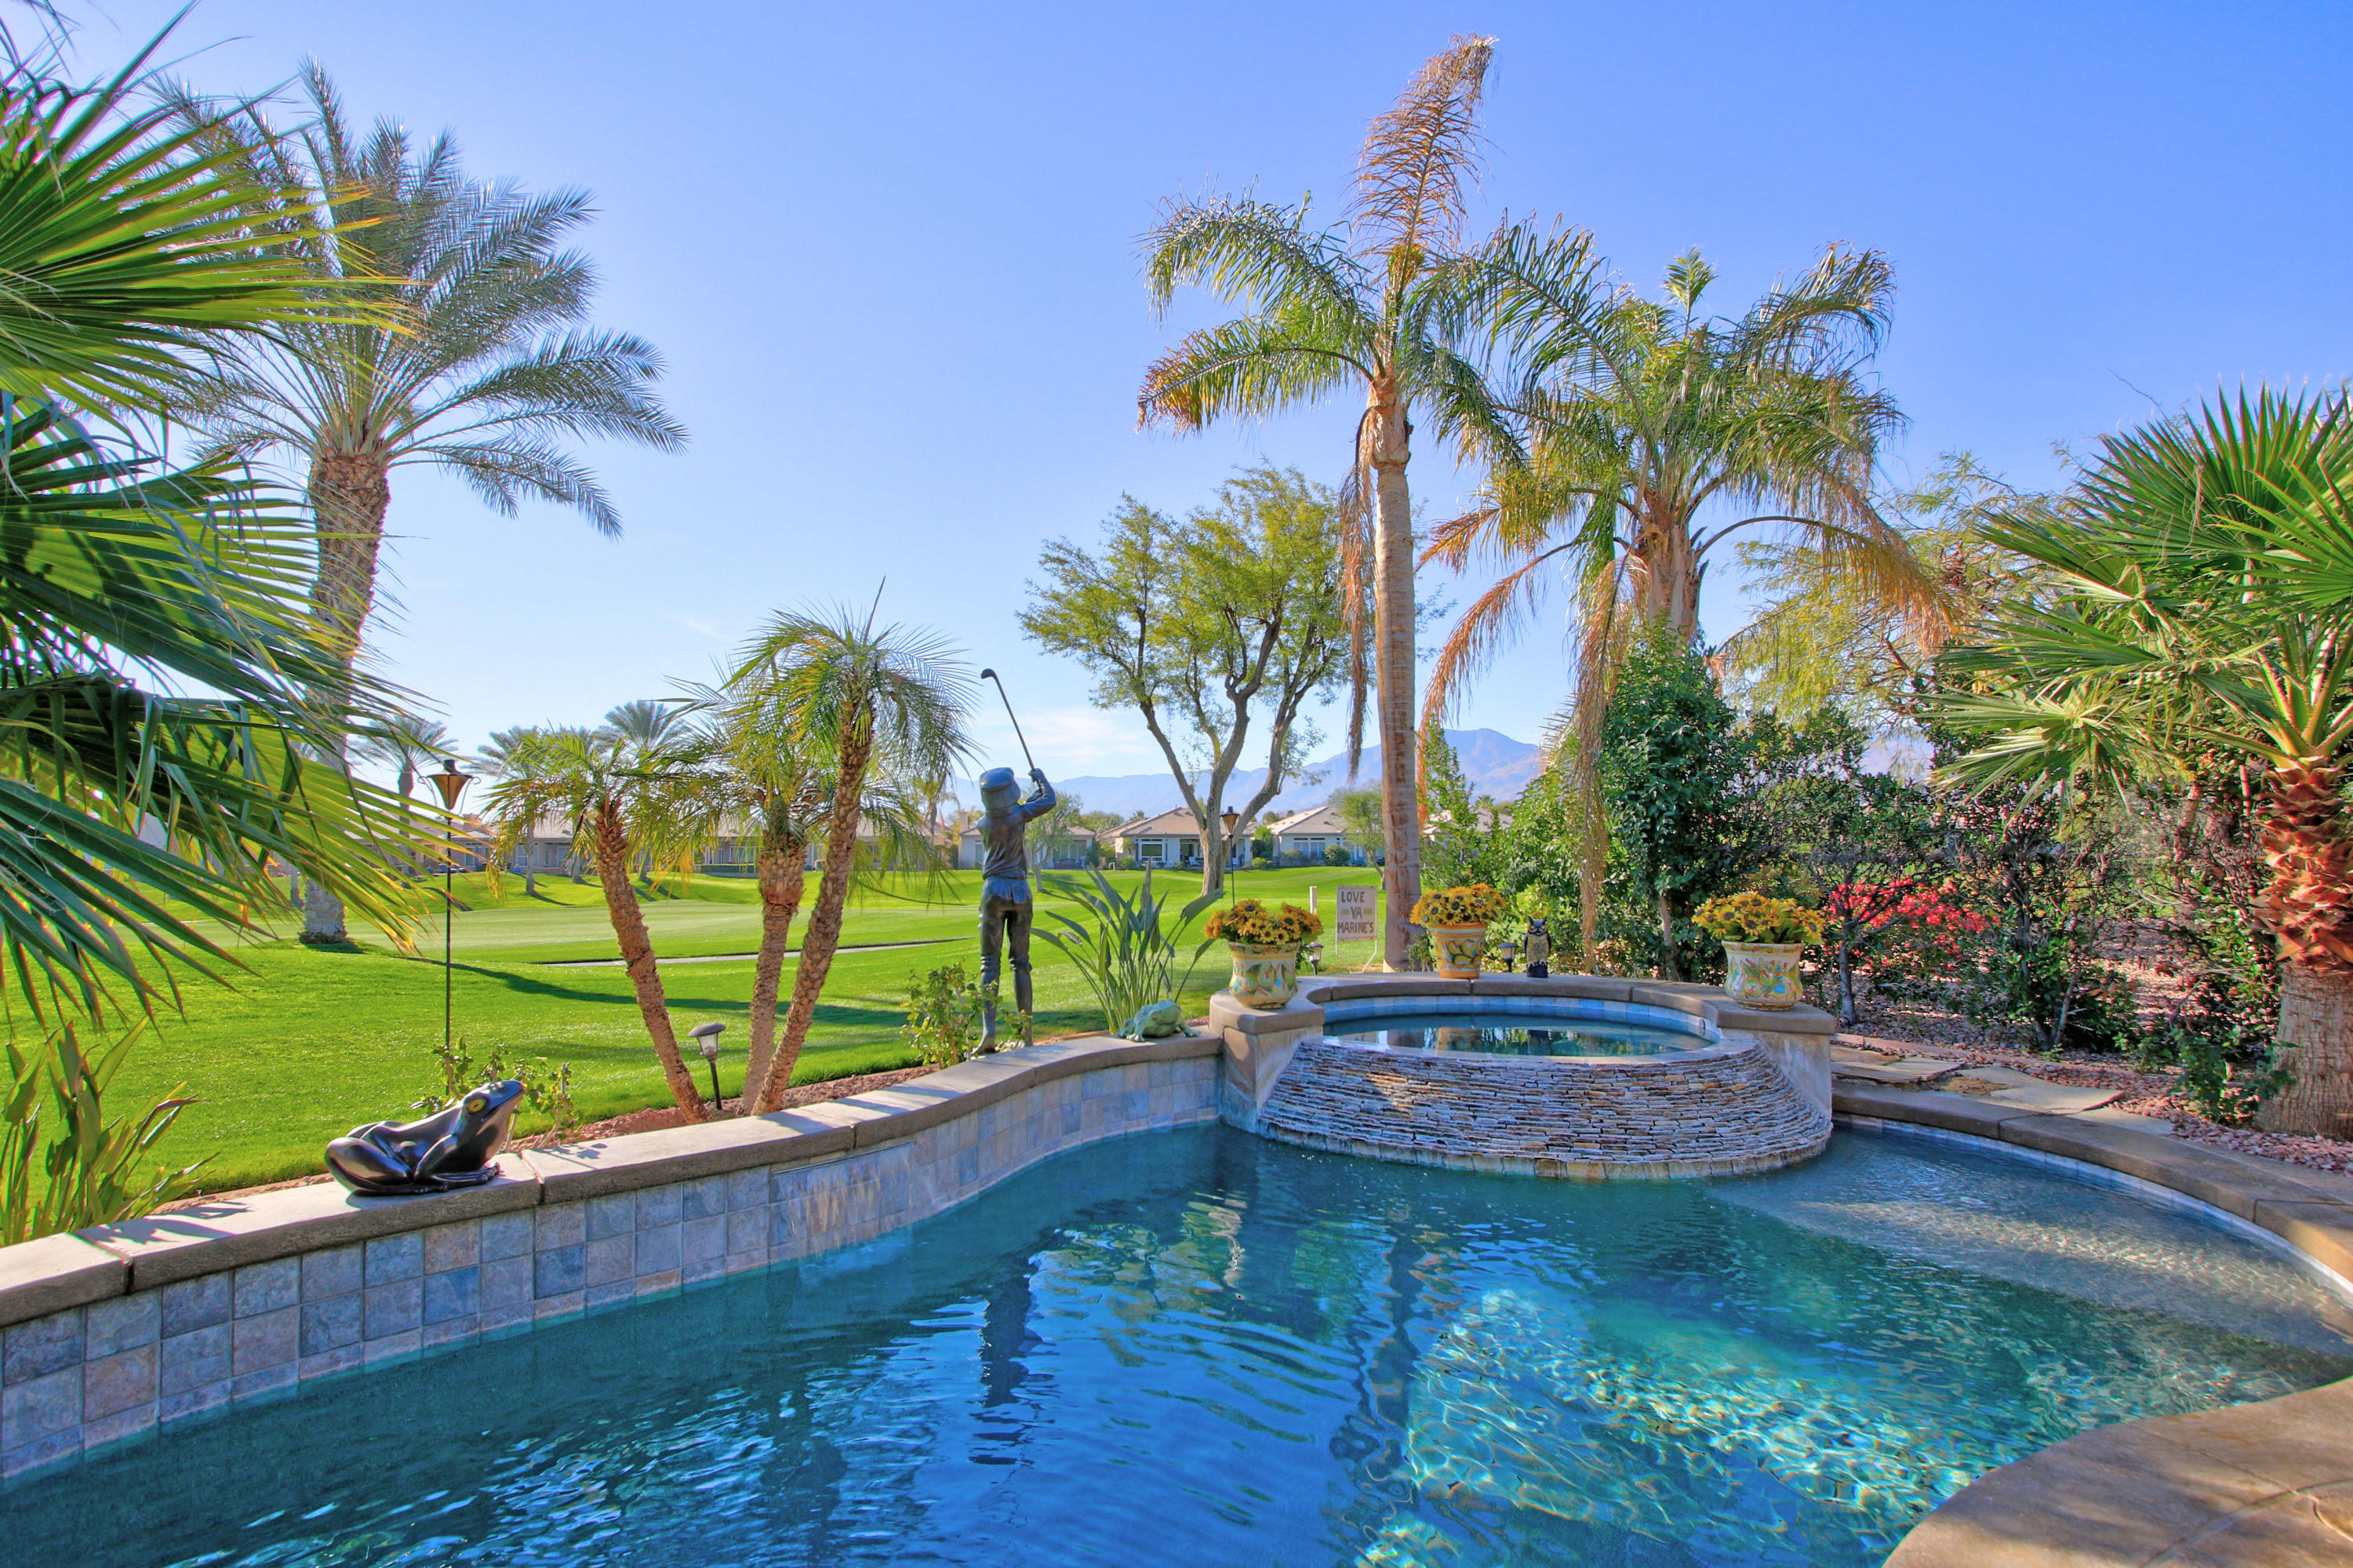 Have you been looking for a premium location, beautiful remodeled property with a private pool and Spa on a quiet Cul De Sac  in Heritage Palms overlooking the 17th fairway with views?  You have just found it!  This exceptional property has been meticulously maintained.  The customized home features panoramic views, private salt water pool and Spa, huge kitchen with breakfast bar, Master bedroom suite with custom built in closet, crown moldings, custom painting, 2 car garage and separate cart door entrance, recently epoxy garage floor installed, walkways surround this property with new art overlay coverings, a side yard with artificial turf, and so much more! Get ready to enjoy the lifestyle that Heritage Palms has to offer. The amenities include clubhouse facilities,  Championship golfing, lighted tennis courts, restaurant, lounge and fitness center, community pools and spas. Come see this property and get ready to say you are home at Heritage Palms.